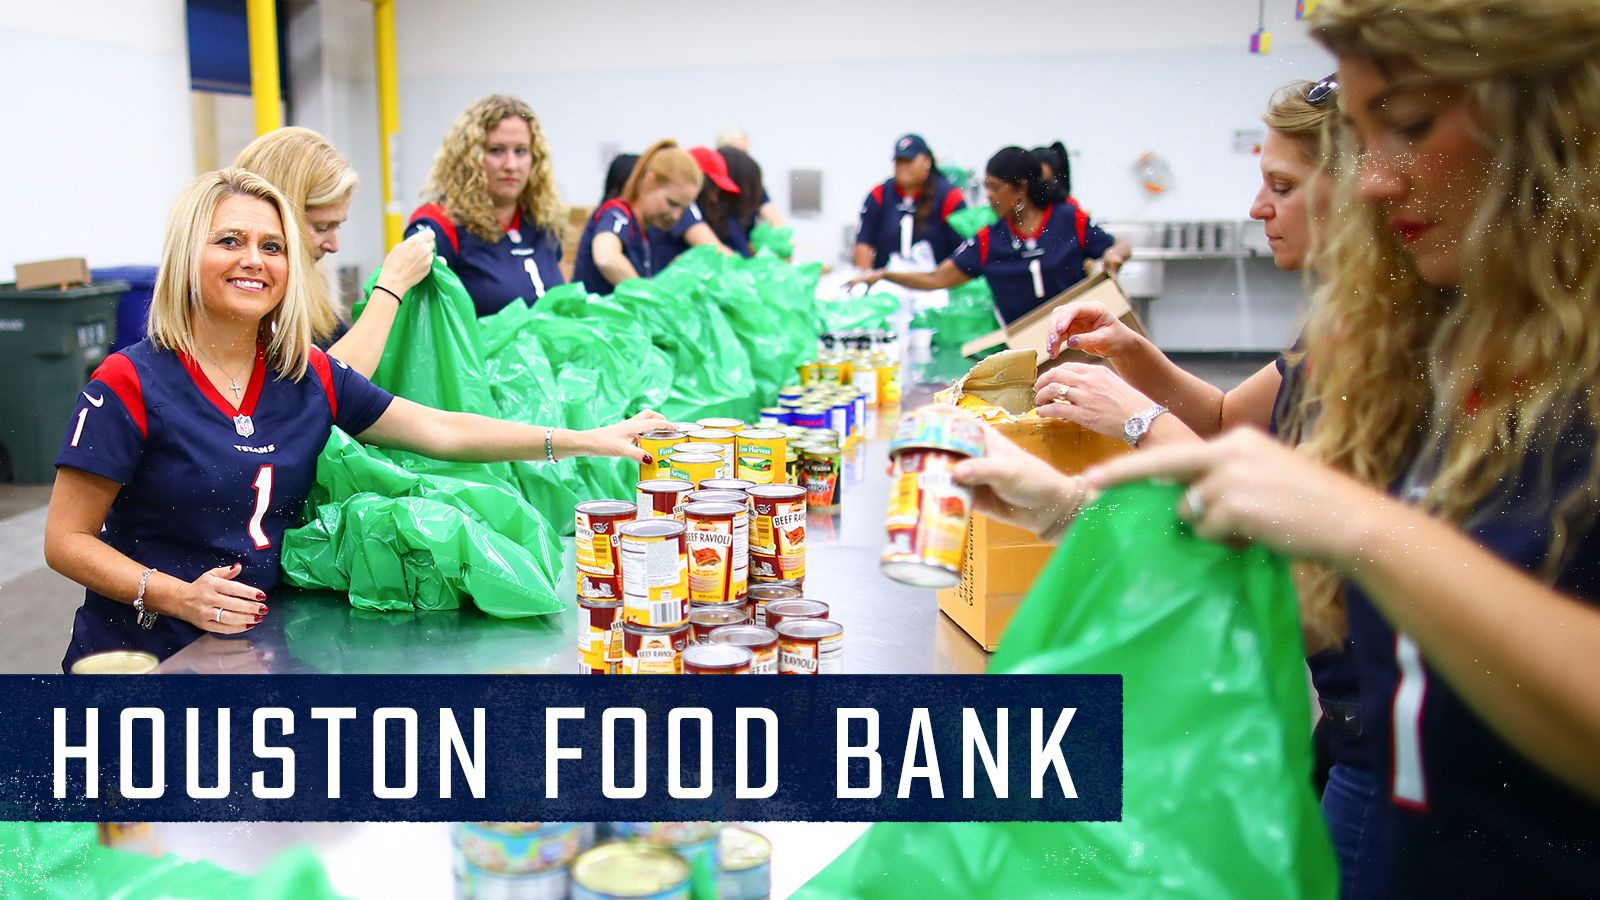 button_HoustonFoodBank